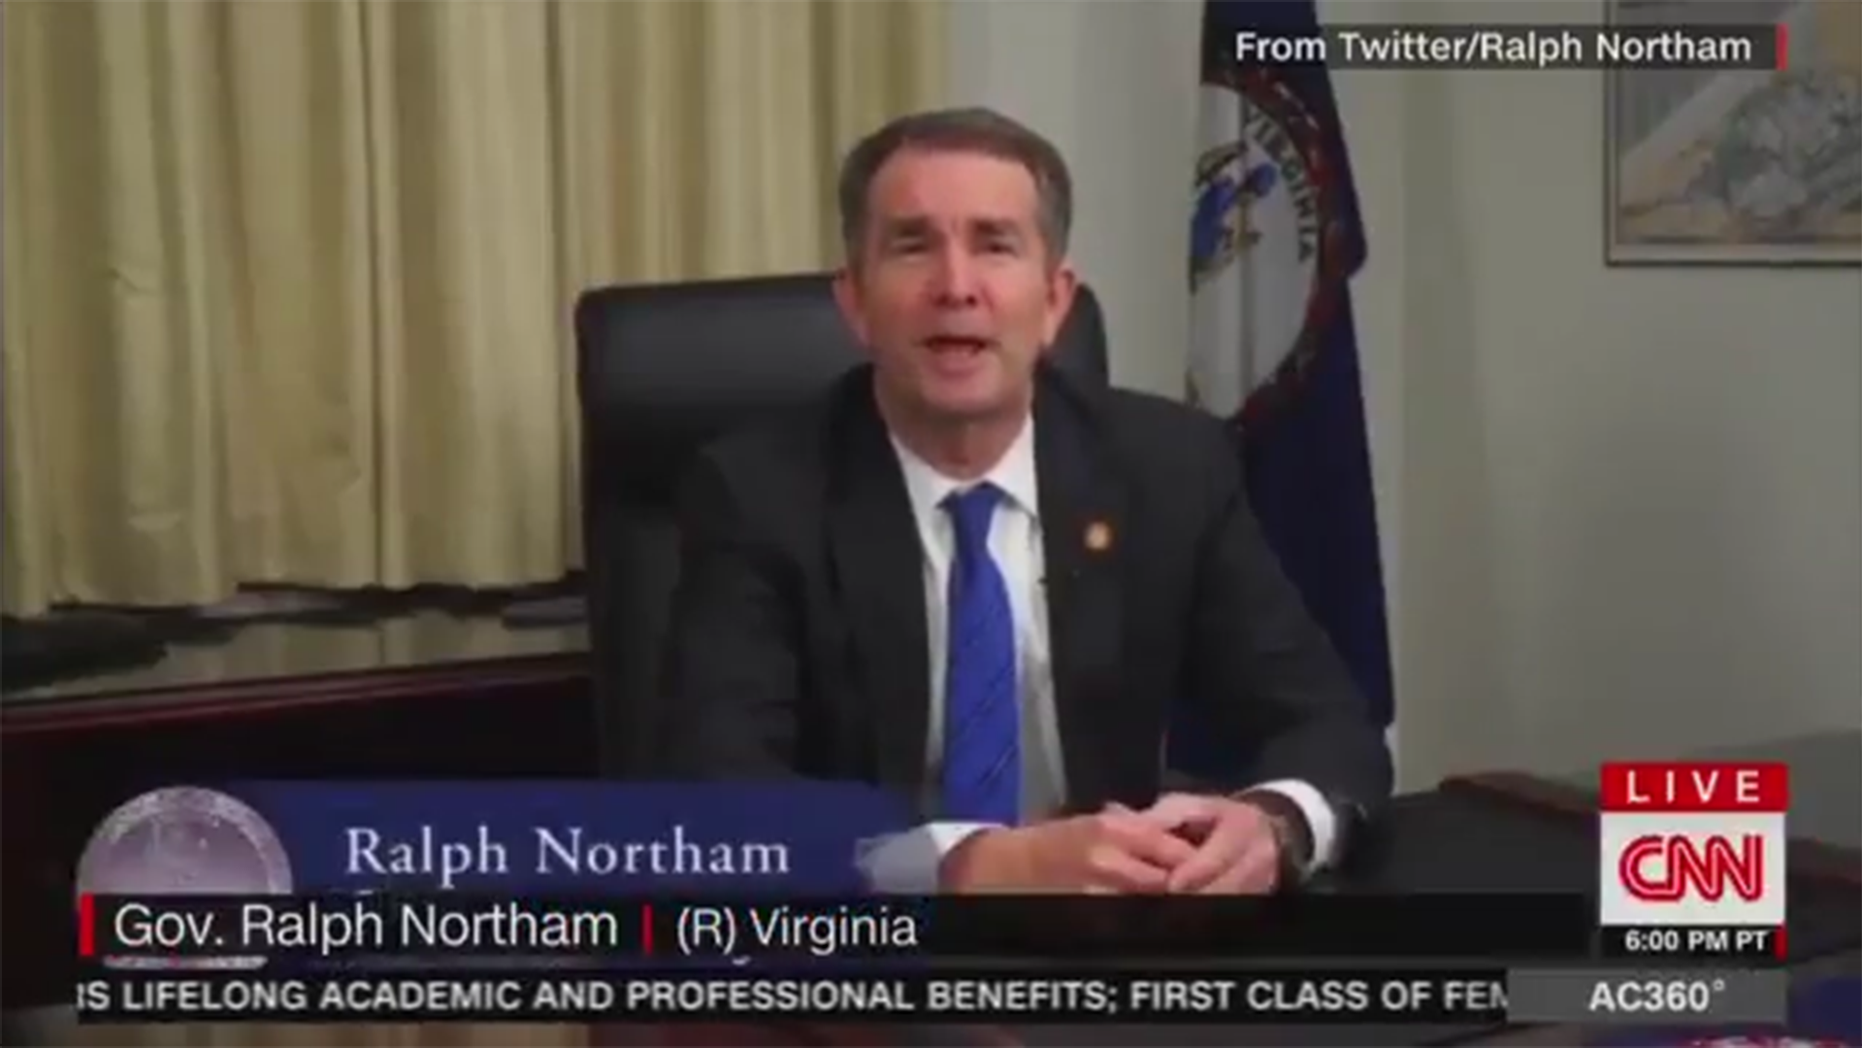 CNN labeled embattled Virginia Democrat Gov. Ralph Northam as a Republican in a chyron during a segment about his apology after his 1984 medical school yearbook page that showed him dressed either in blackface or in a KKK robe.